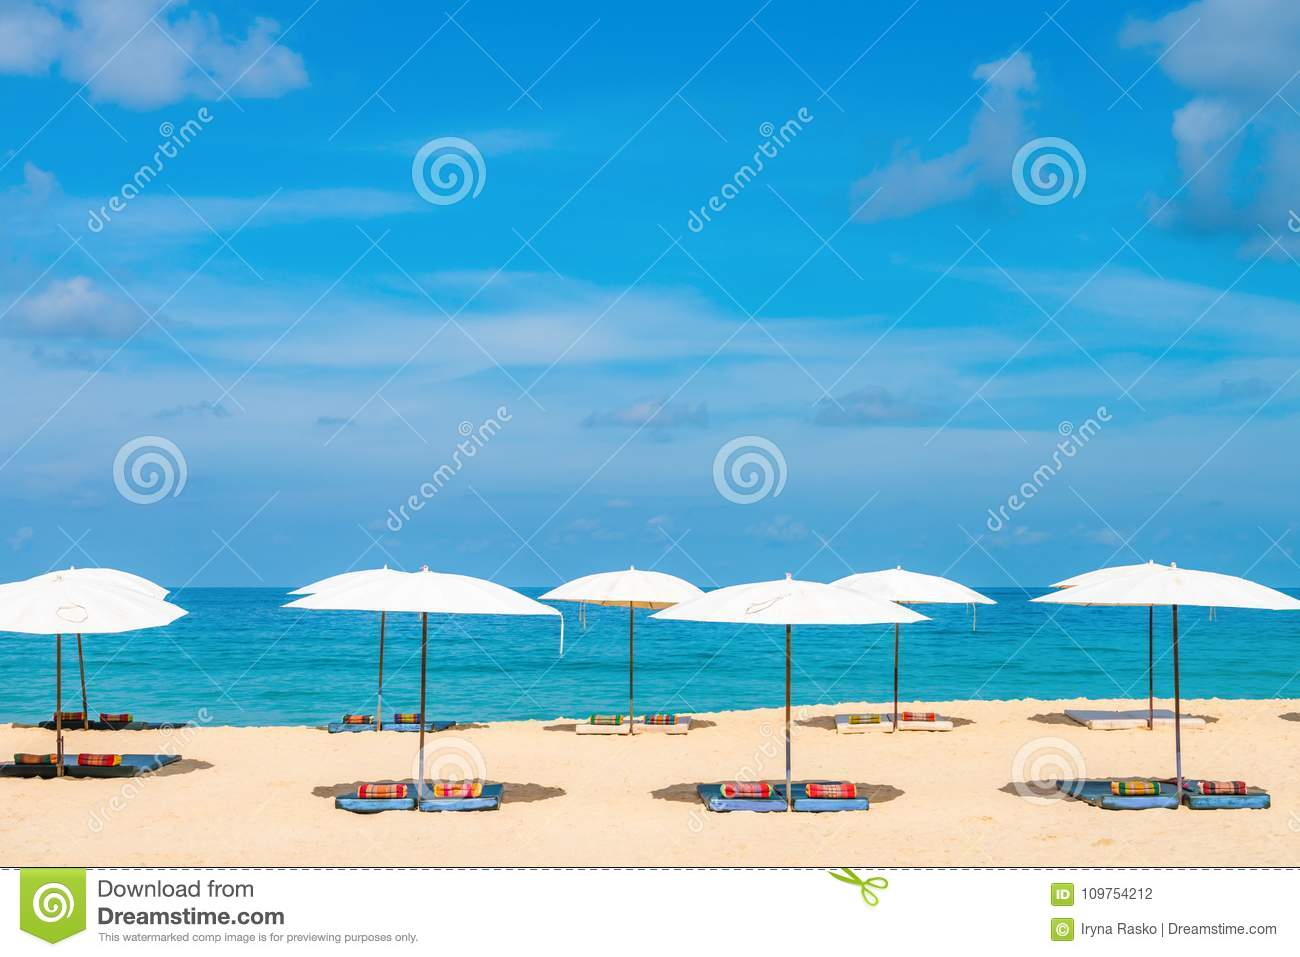 Idollic beach relaxing concept with white parasols on sand